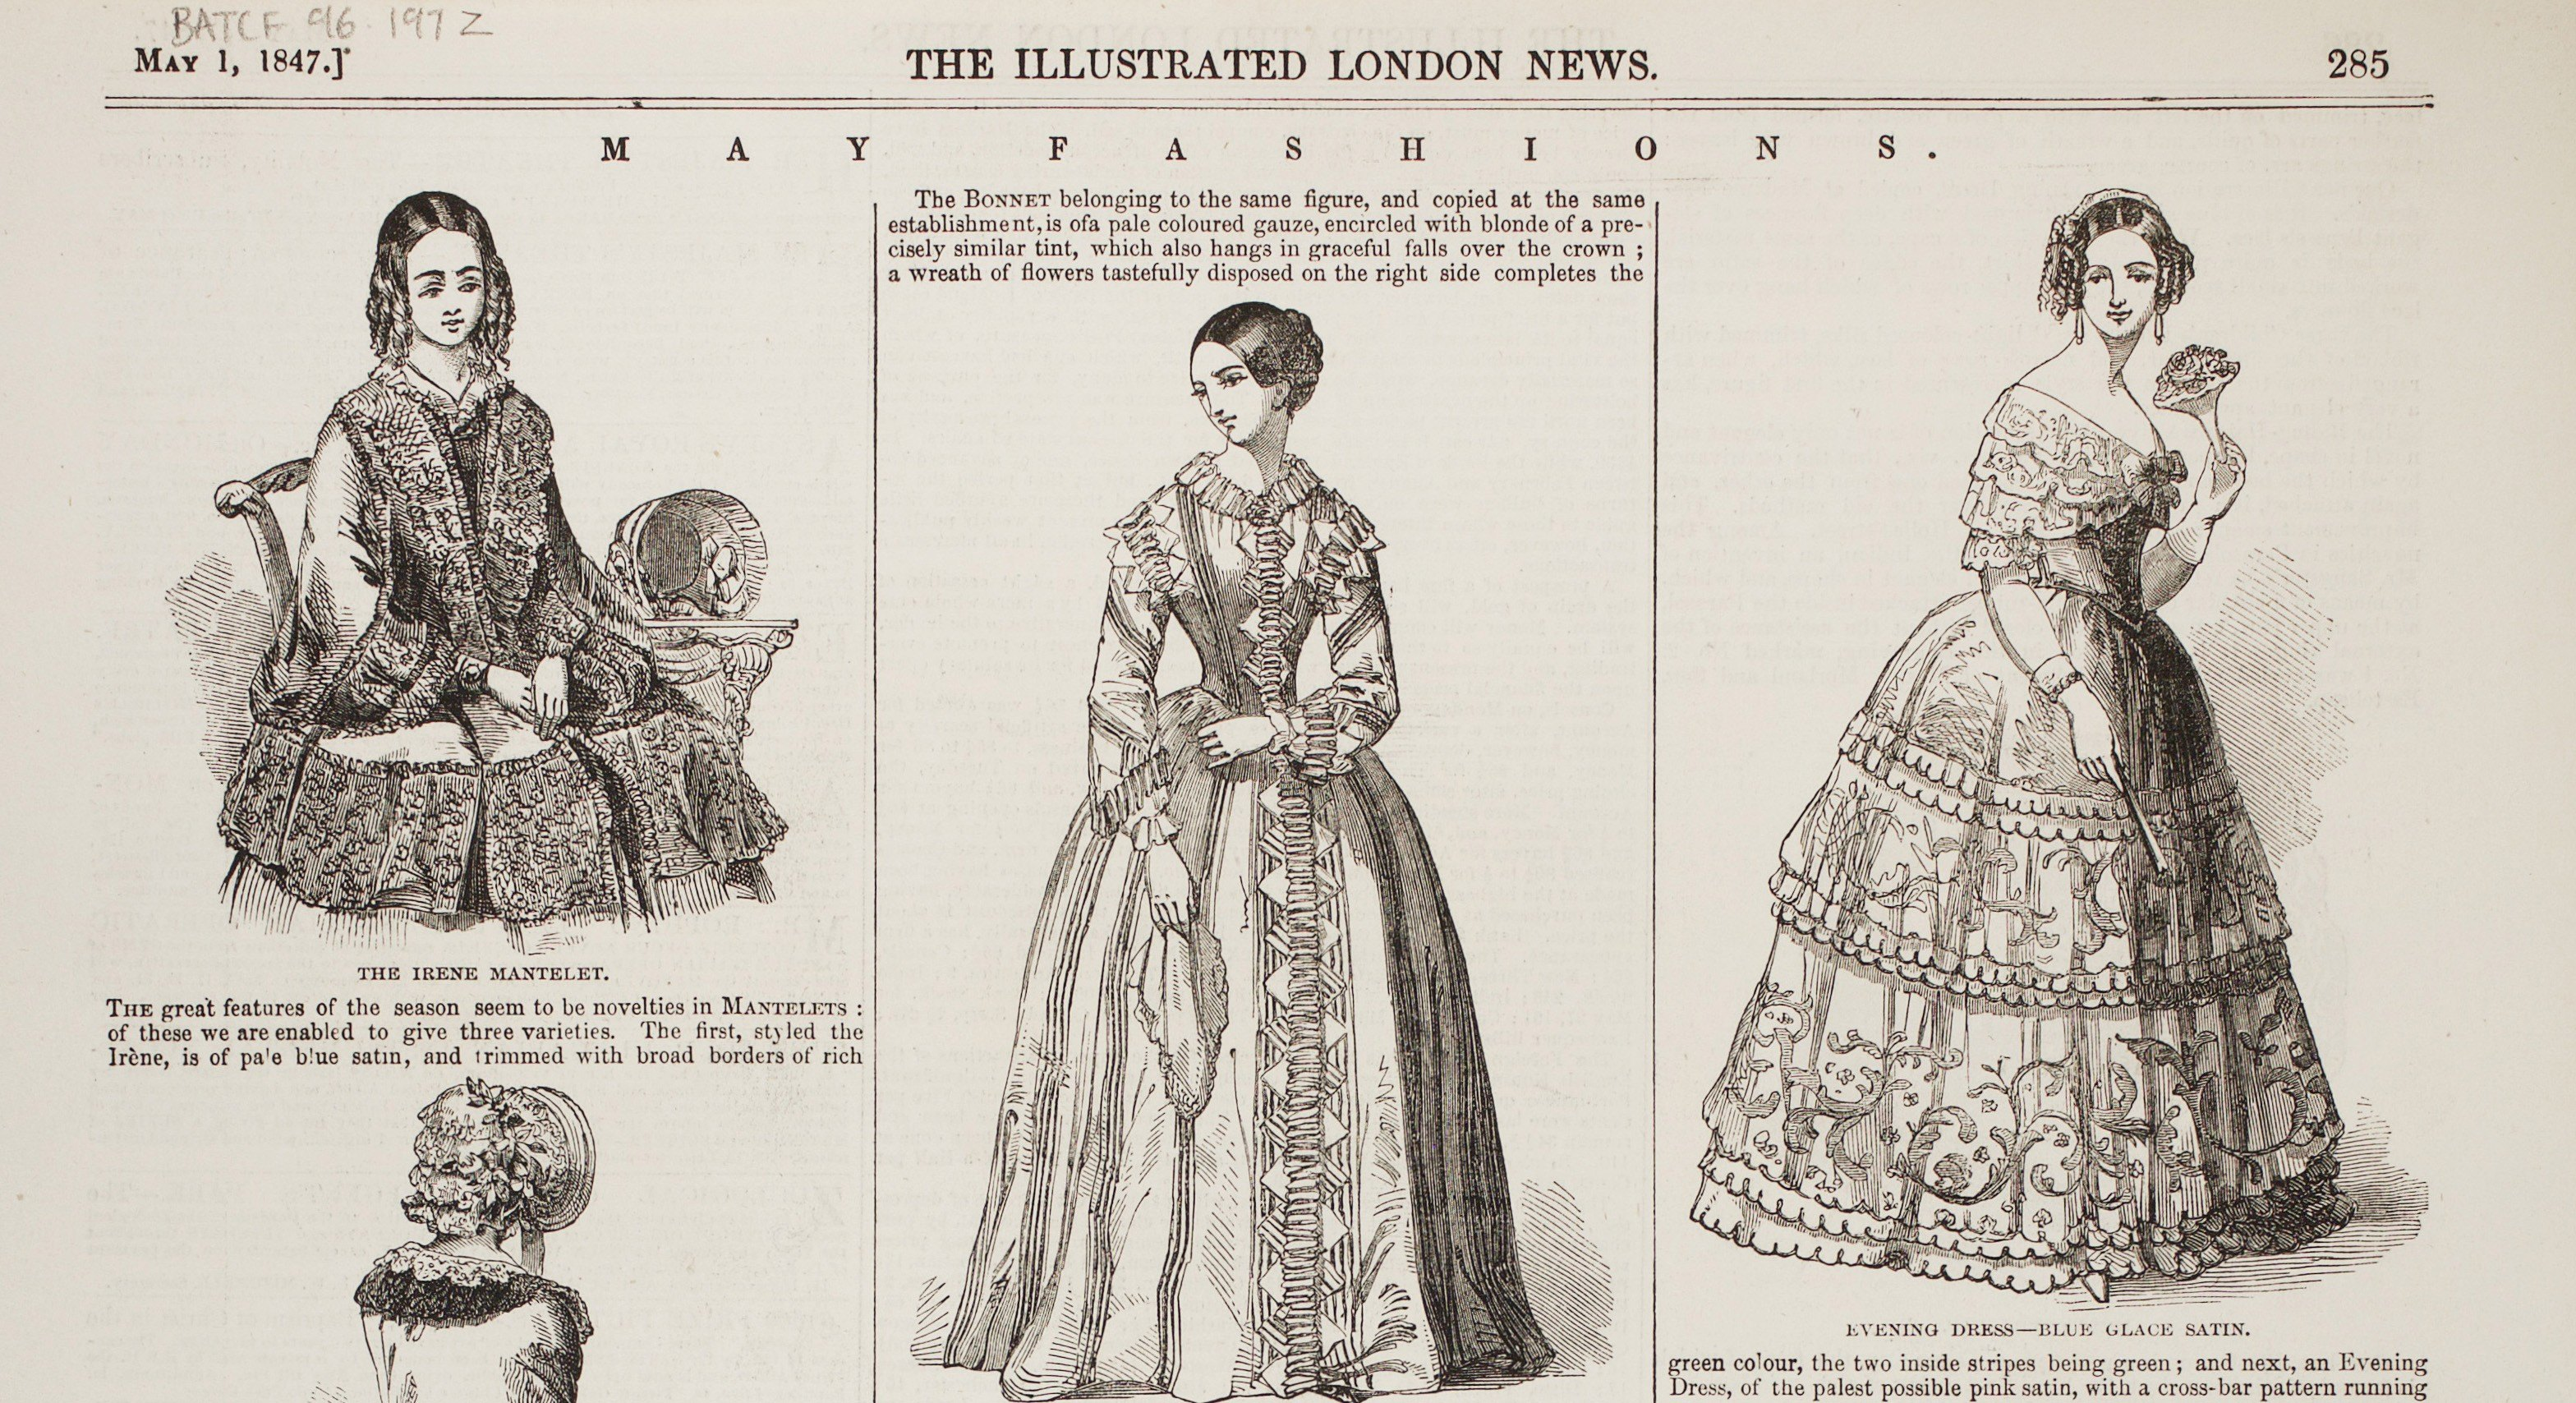 Twilight Talk – Fashion in… The Illustrated London News from